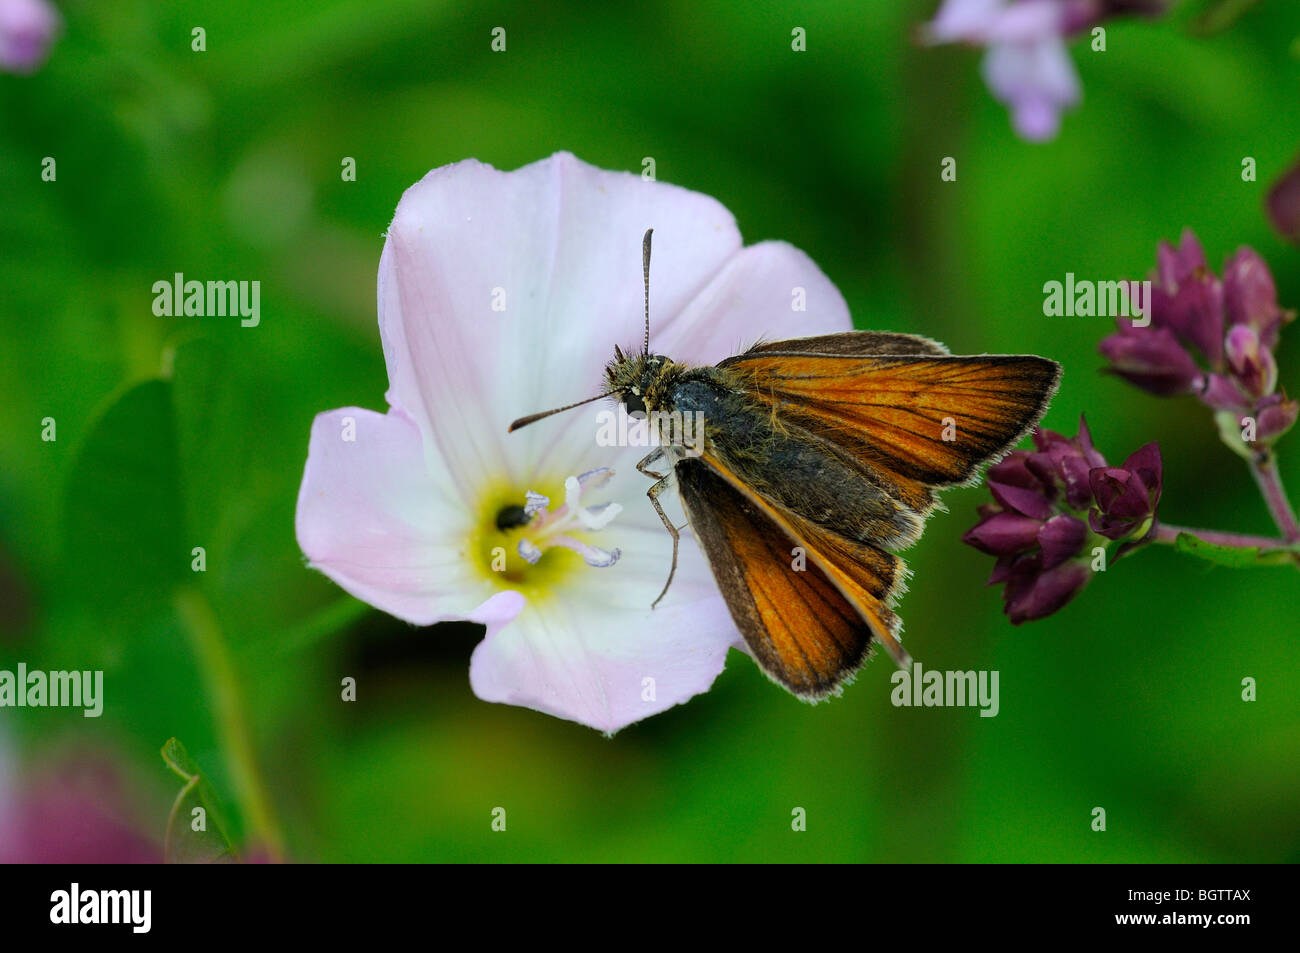 Small Skipper (Thymelicus sylvestris) butterfly feeding on lesser bindweed flower, Oxfordshire, UK. - Stock Image